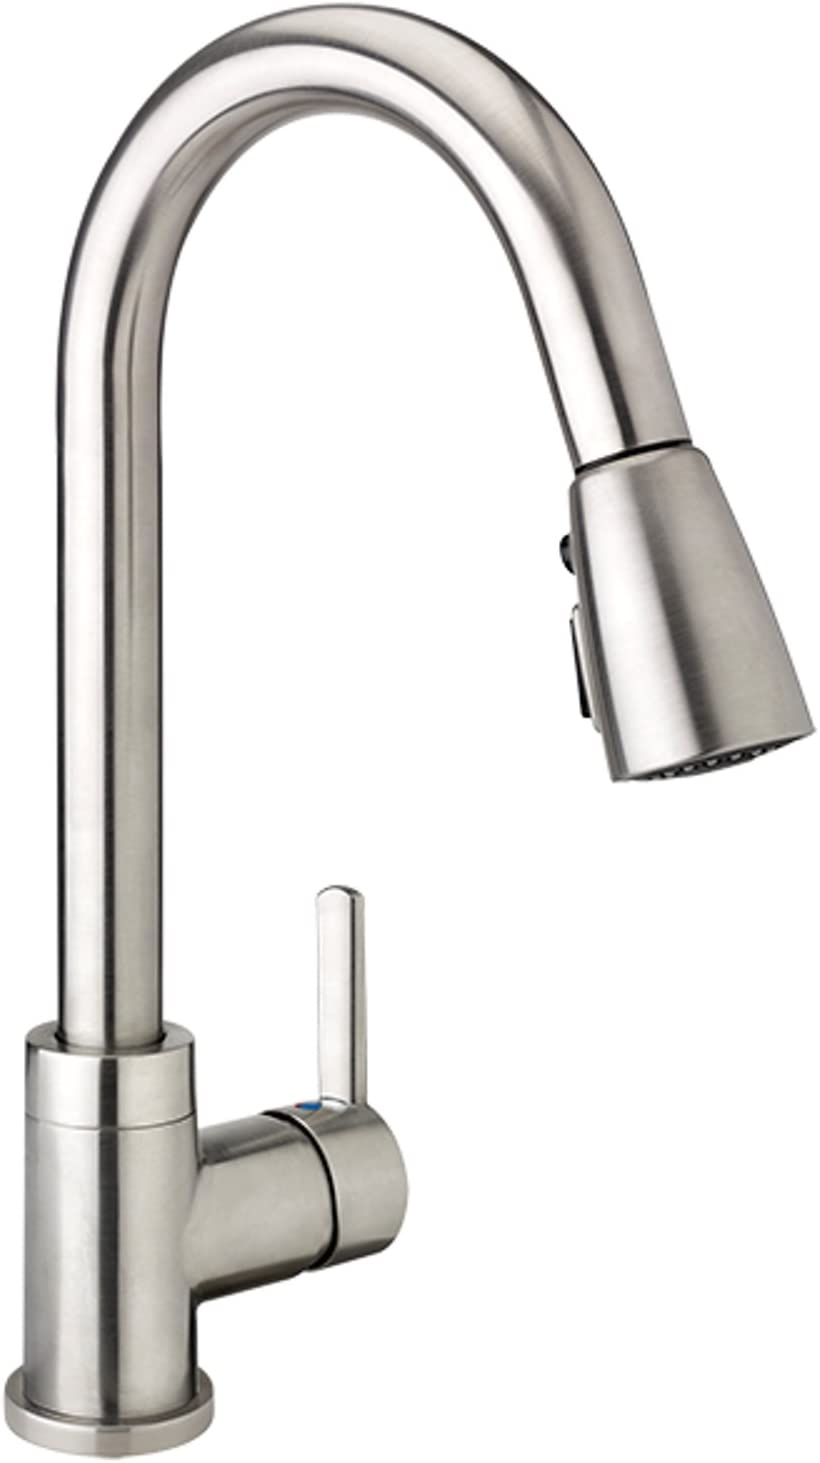 Plumb Pak LOF78CBN Single Handle High Arc, Kitchen Sink Faucet with Pull down Sprayer, Brushed Nickel